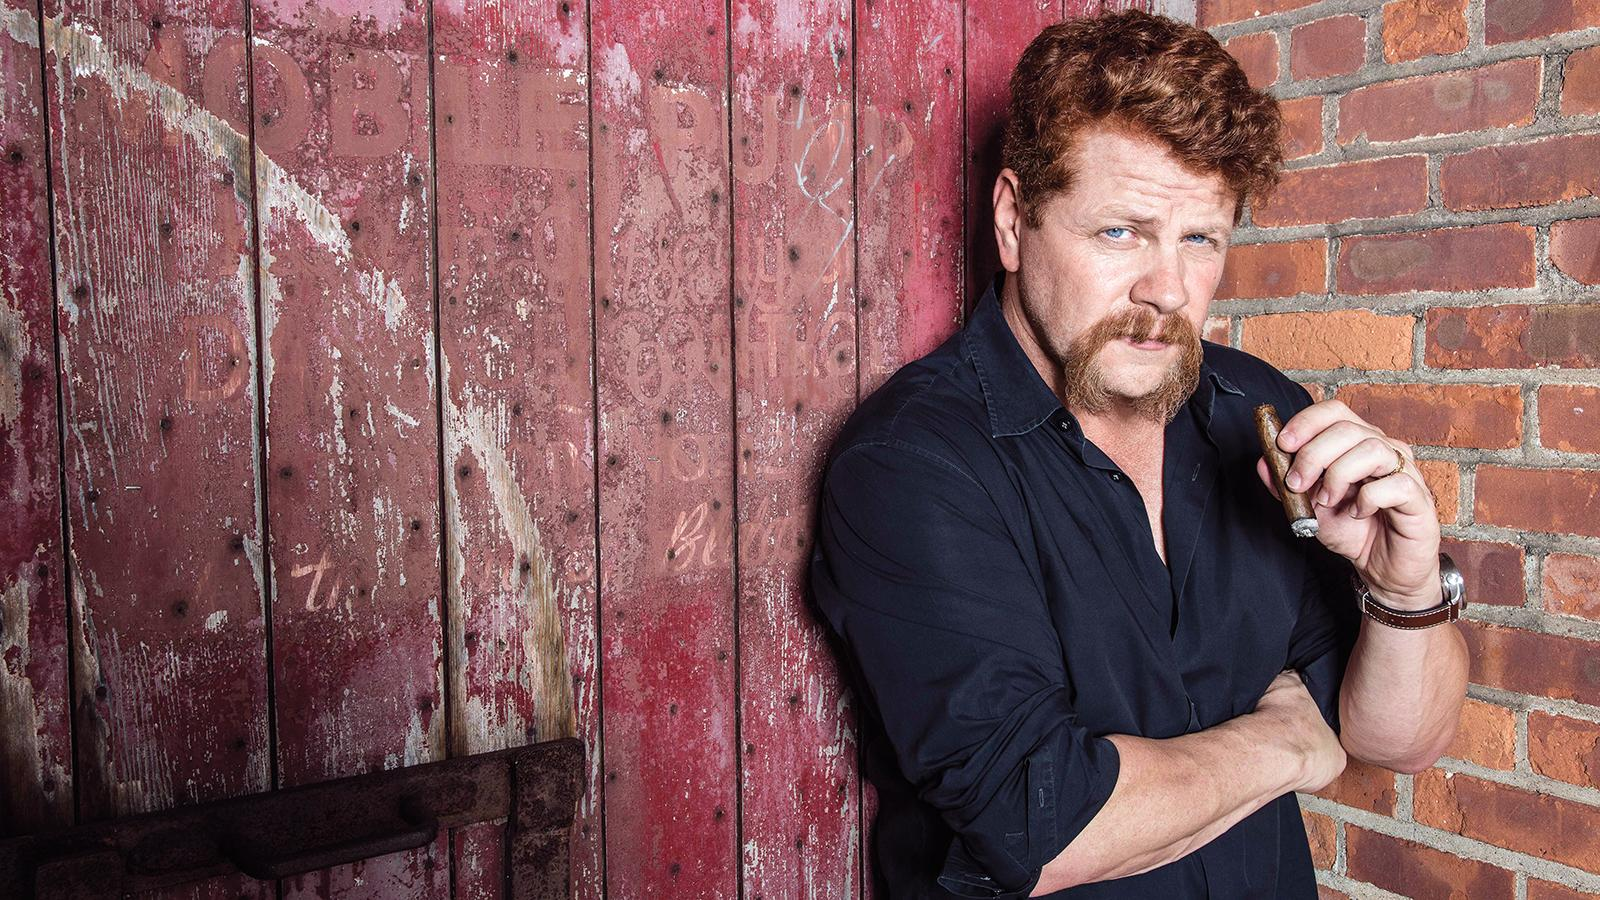 Michael Cudlitz burns his way through one of his favorite cigars, an Arturo Fuente Hemingway Signature, at the Brooklyn Navy Yard in New York City.